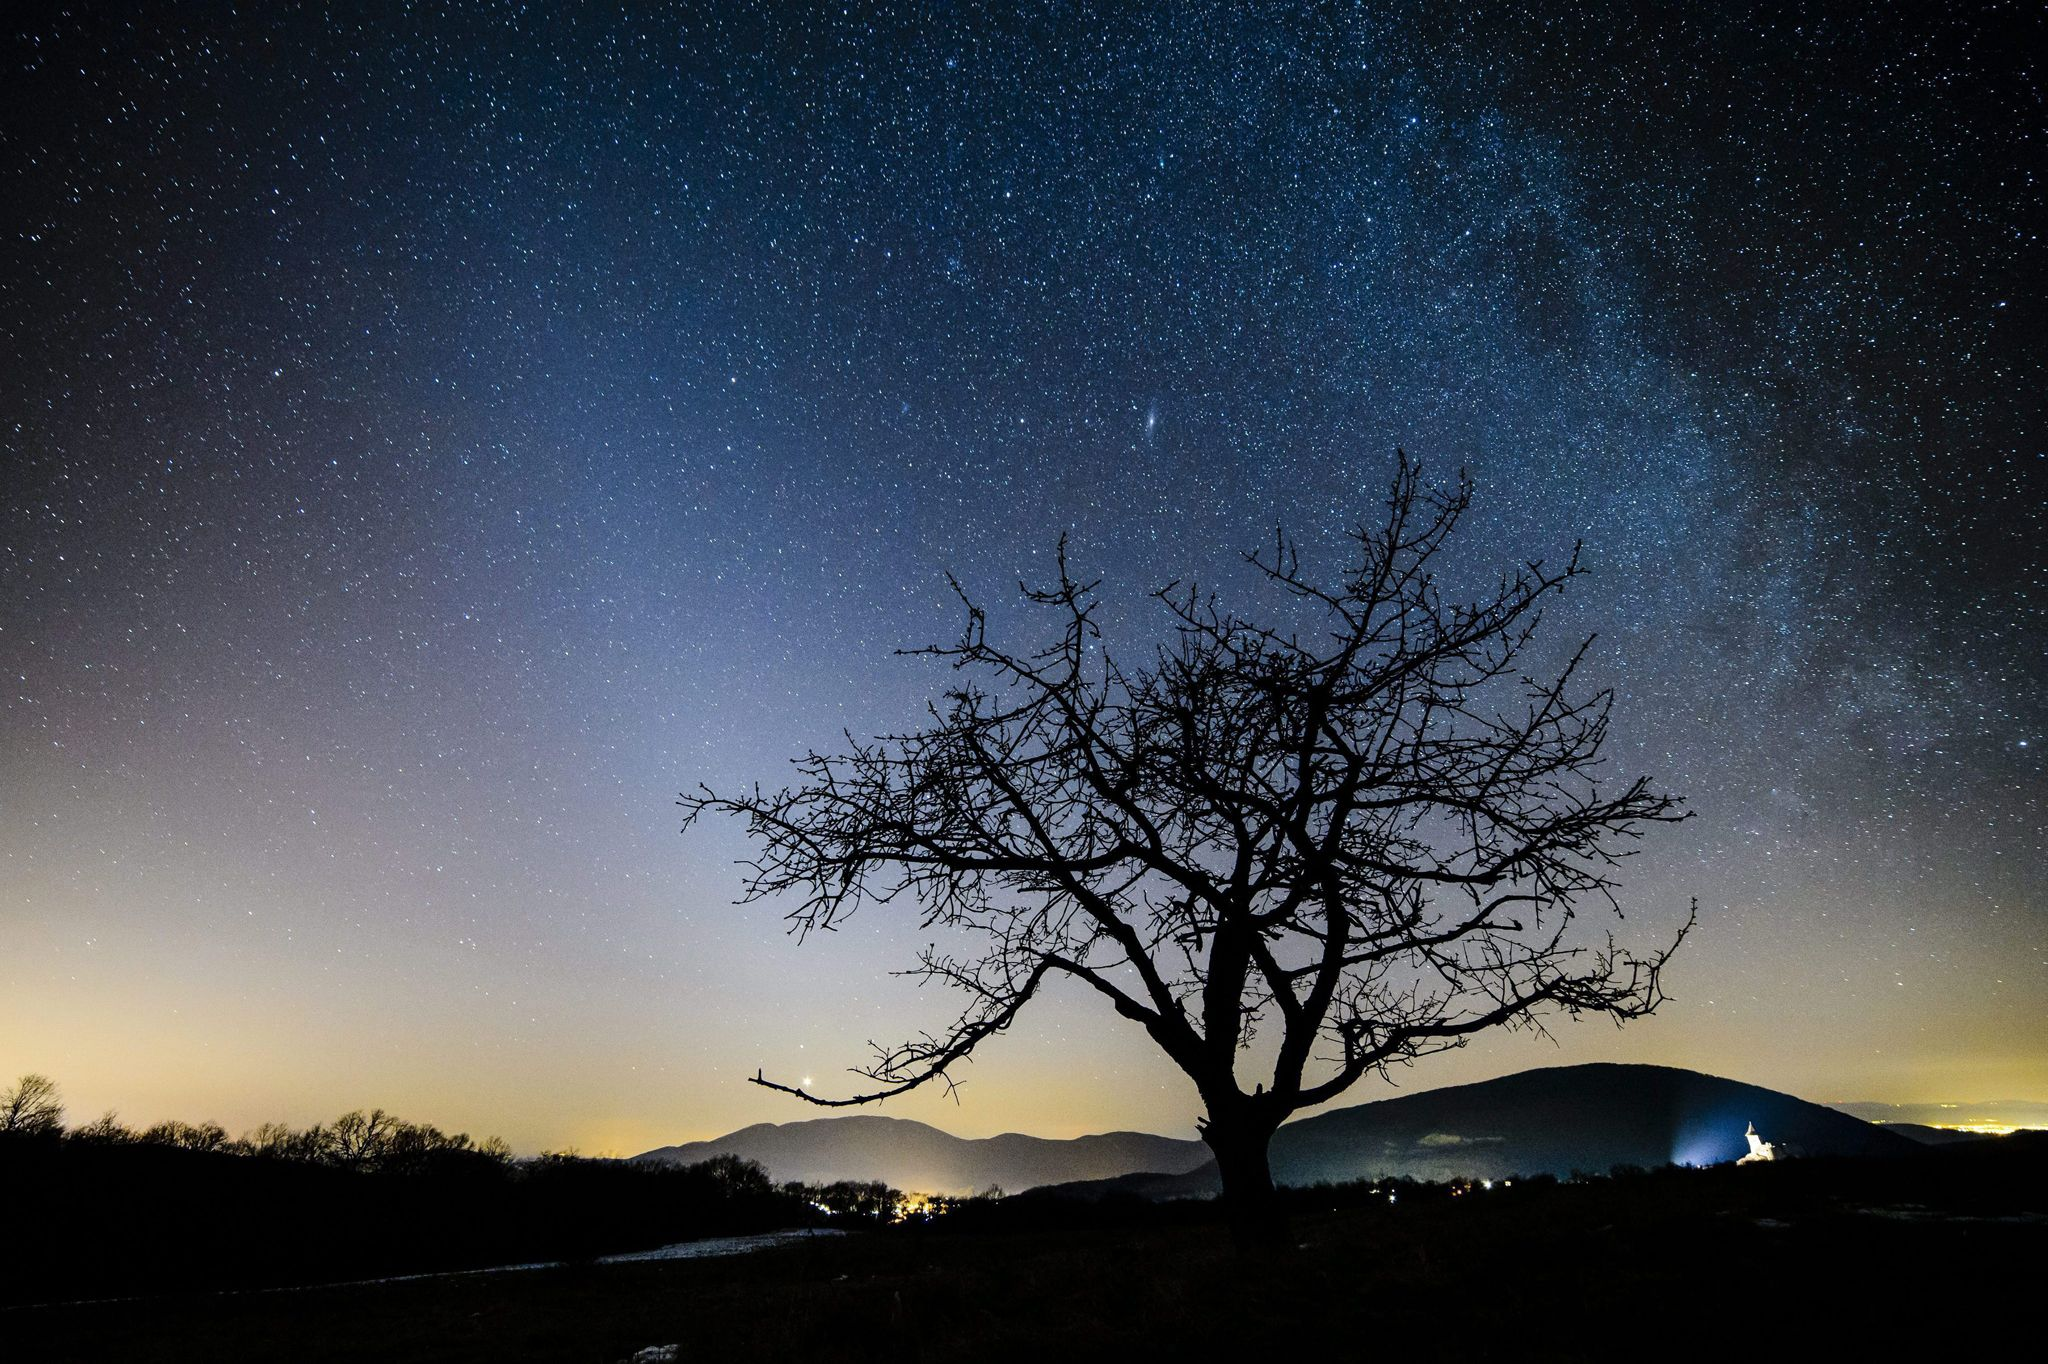 Zodiacal light L and the Milky Way R as seen from